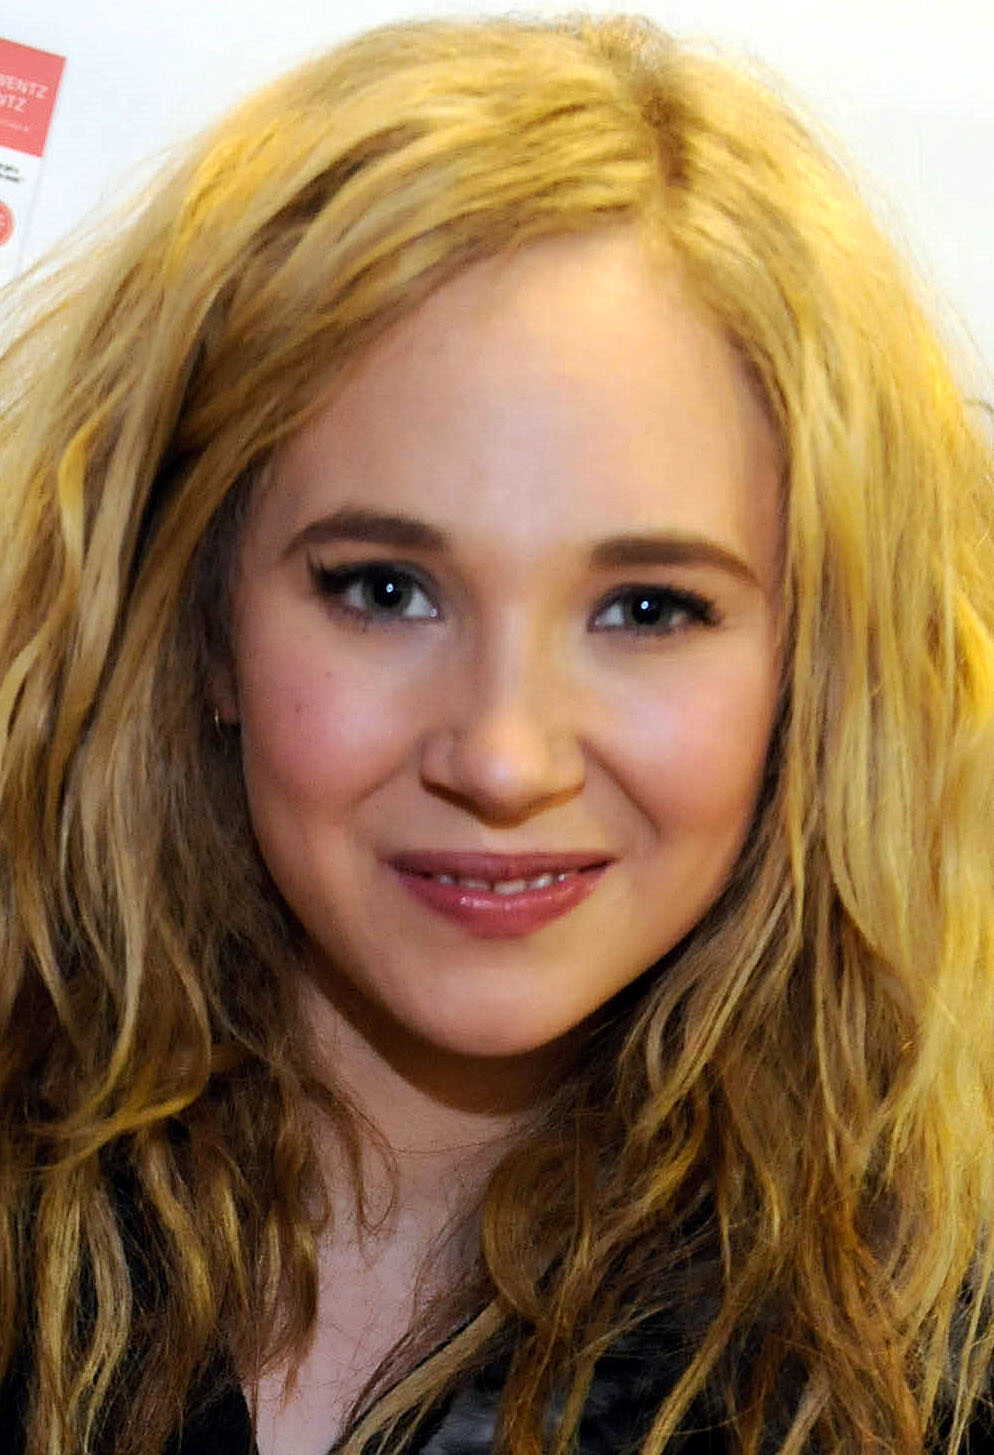 Discussion on this topic: Hannah Monson, juno-temple/